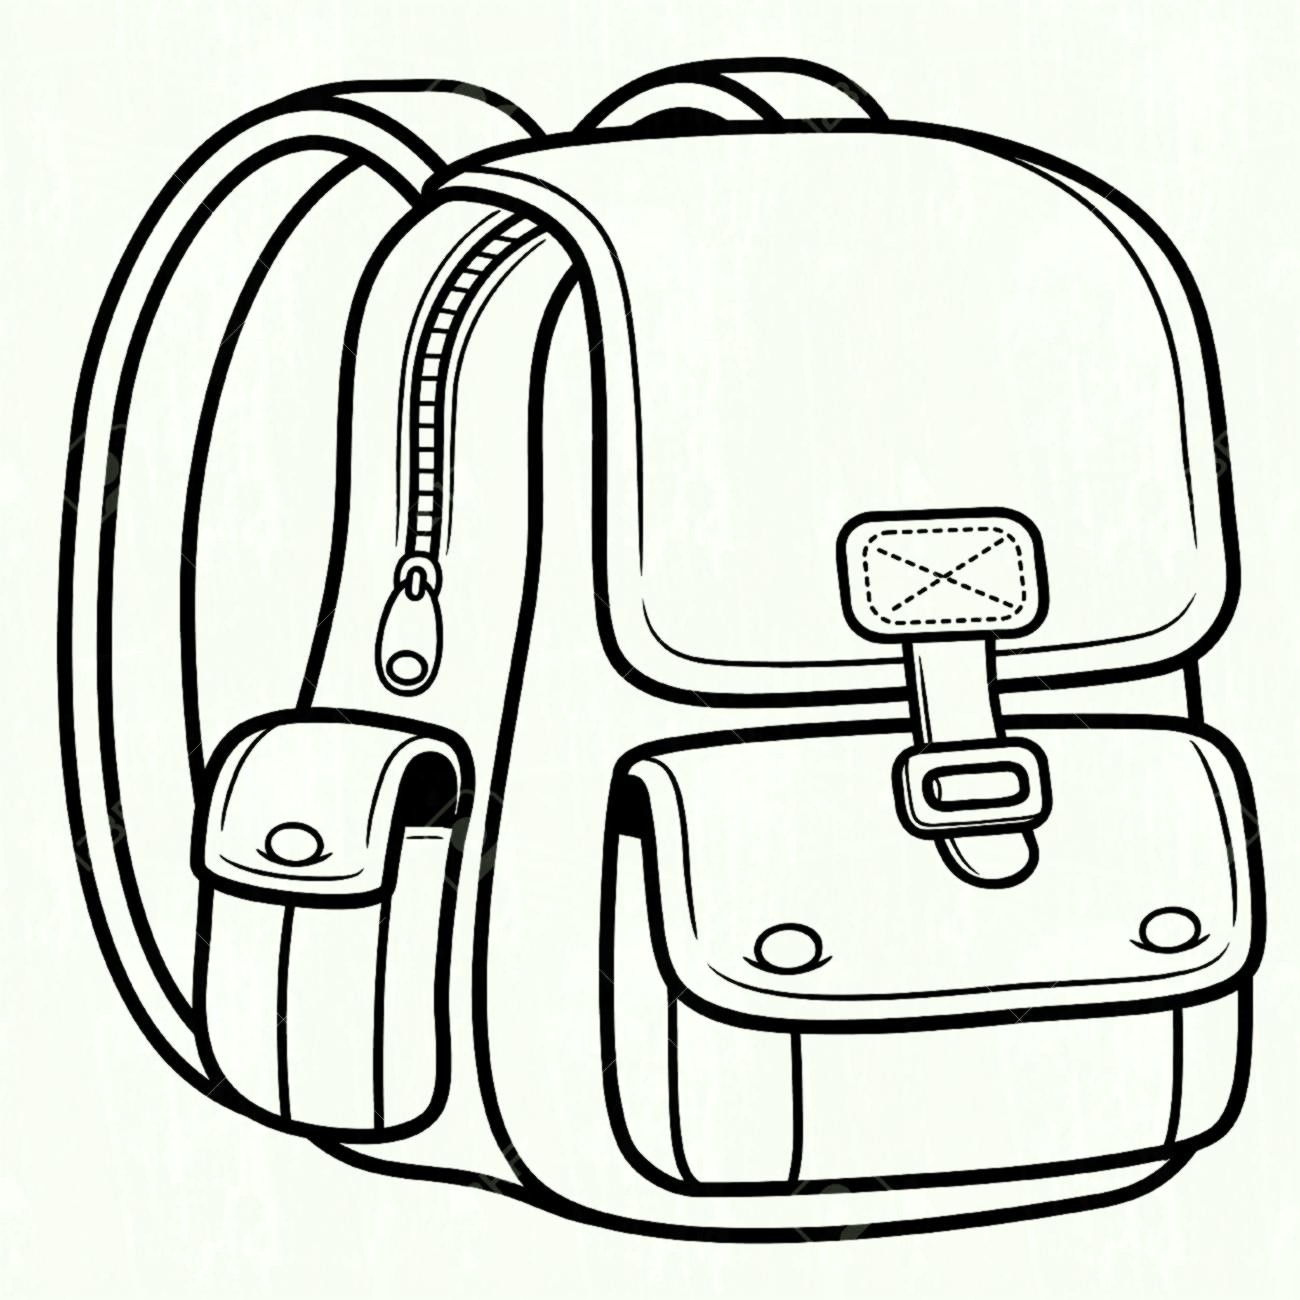 Bag clipart black and white. Bags station